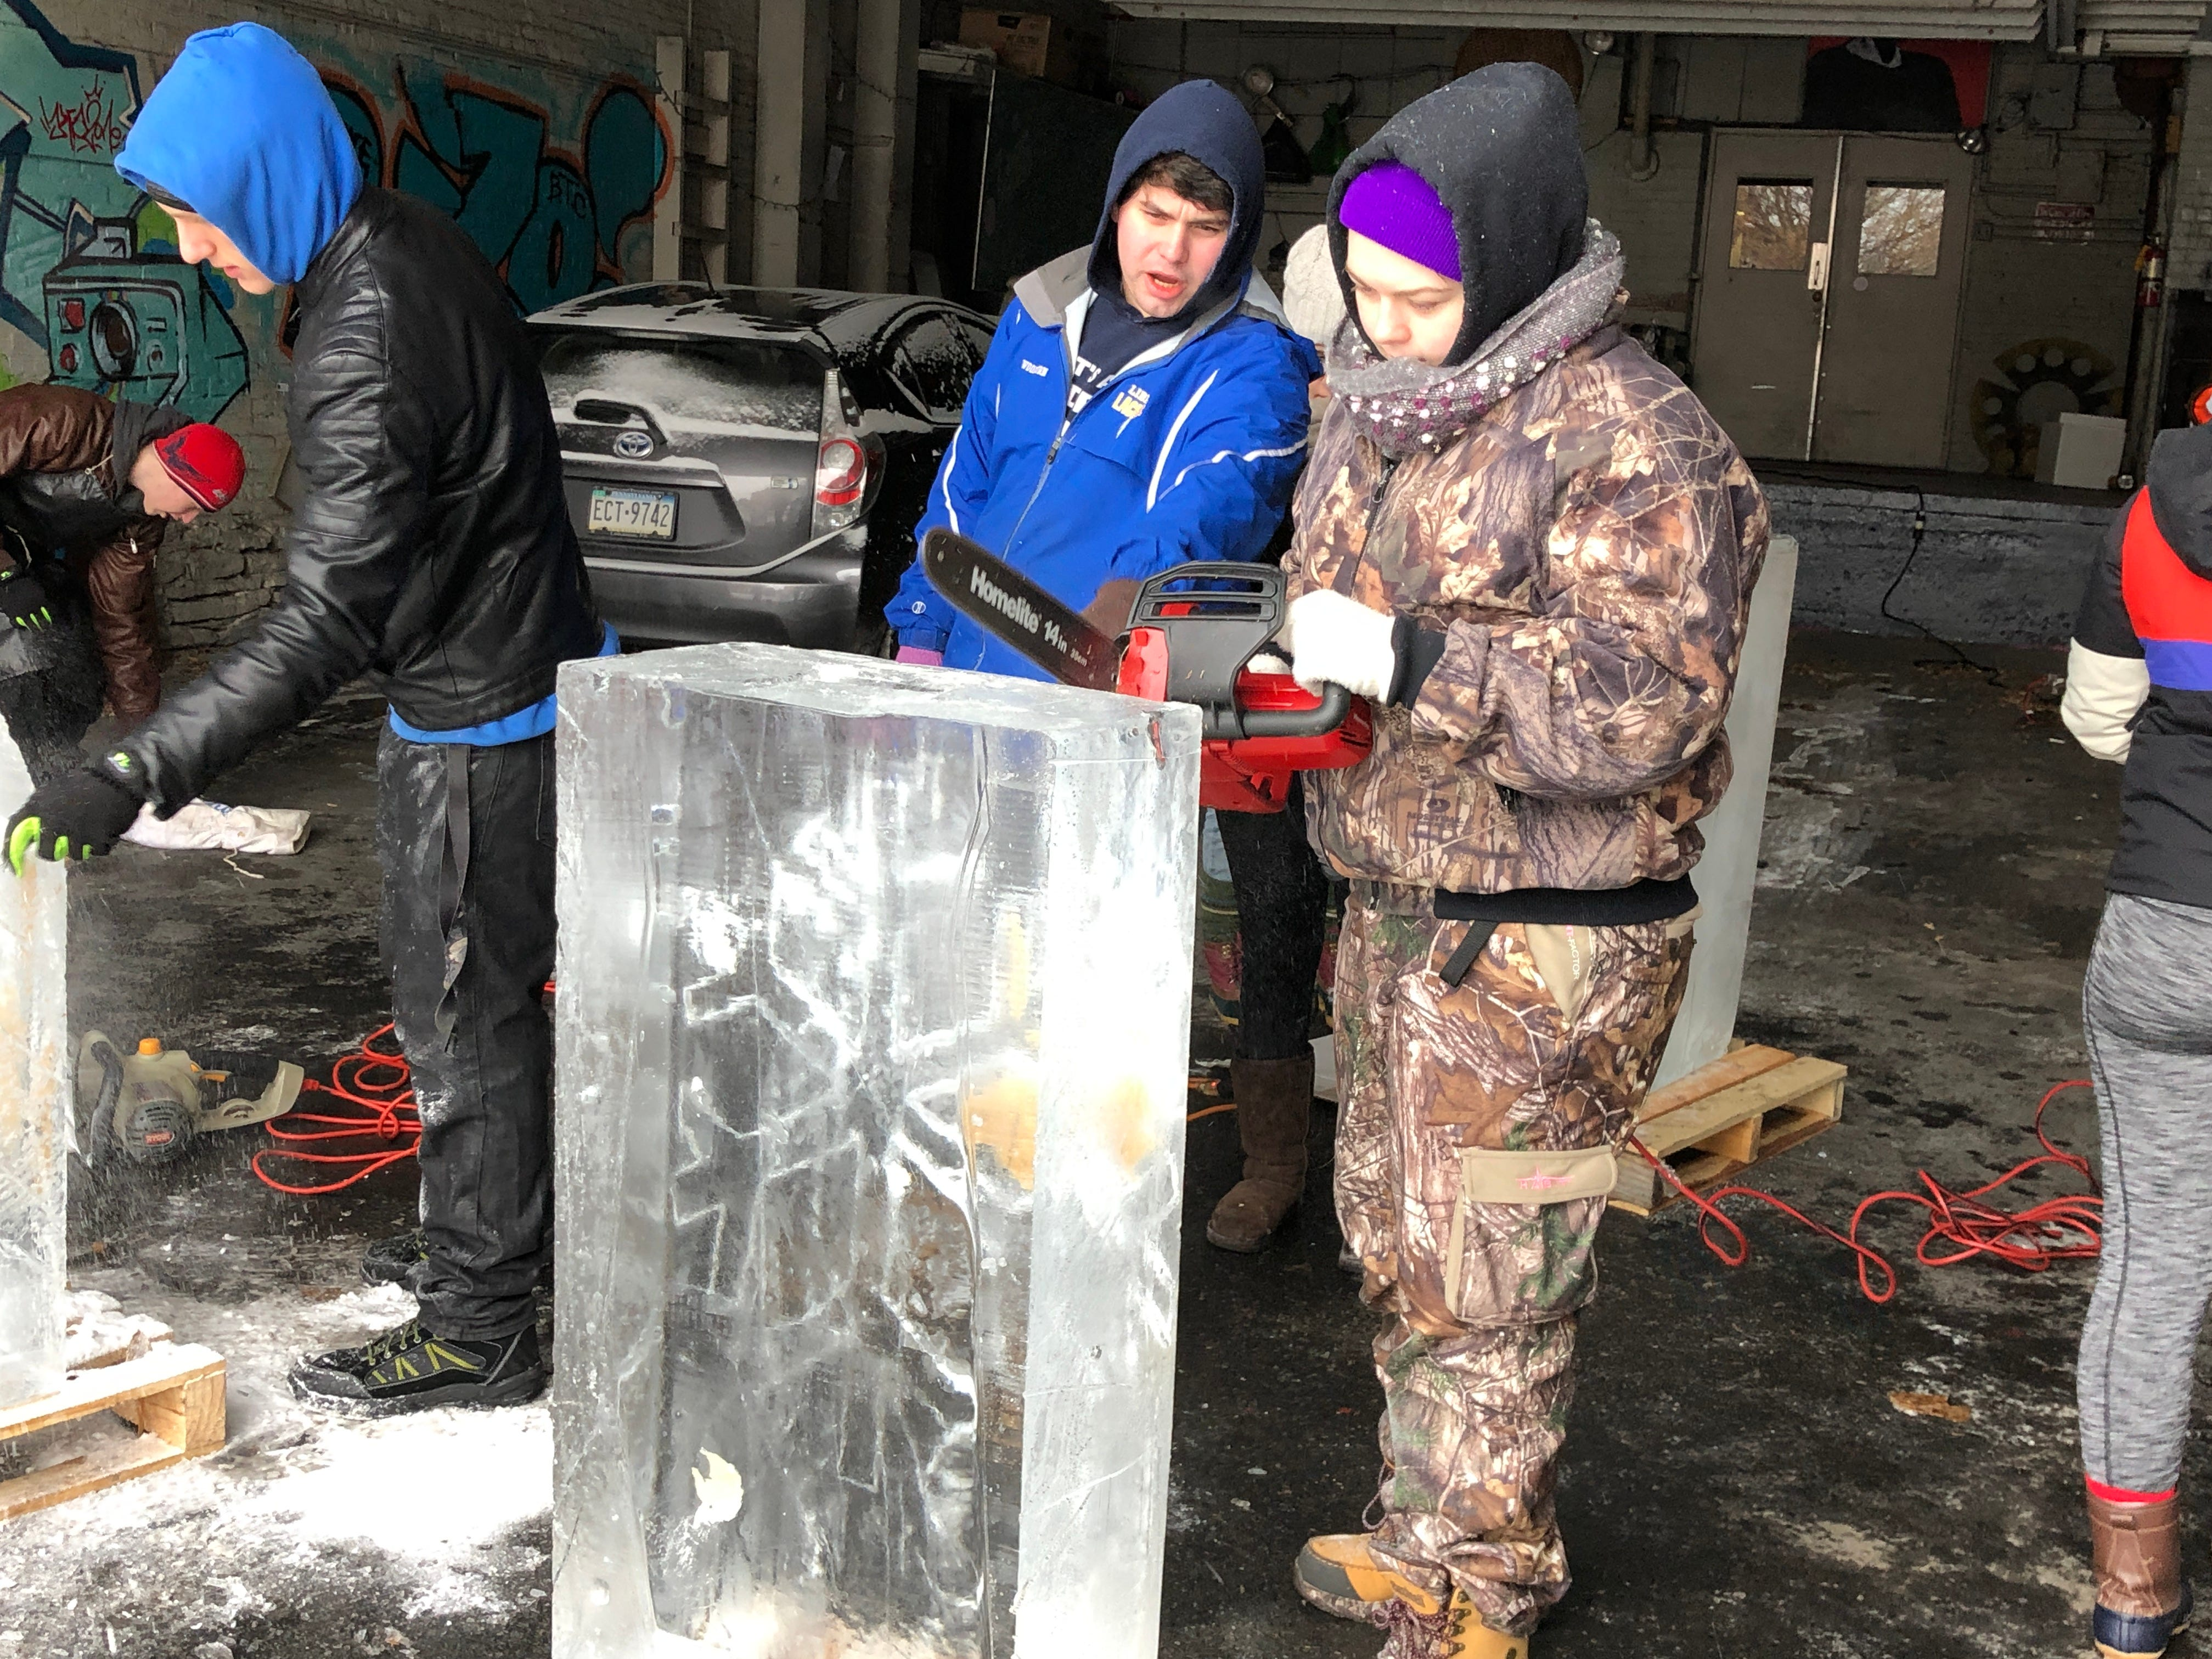 Hanna Koehler gets ready to cut into a block of ice for the first time. The other LCCTC apprentices have tried their hand at ice carving before.